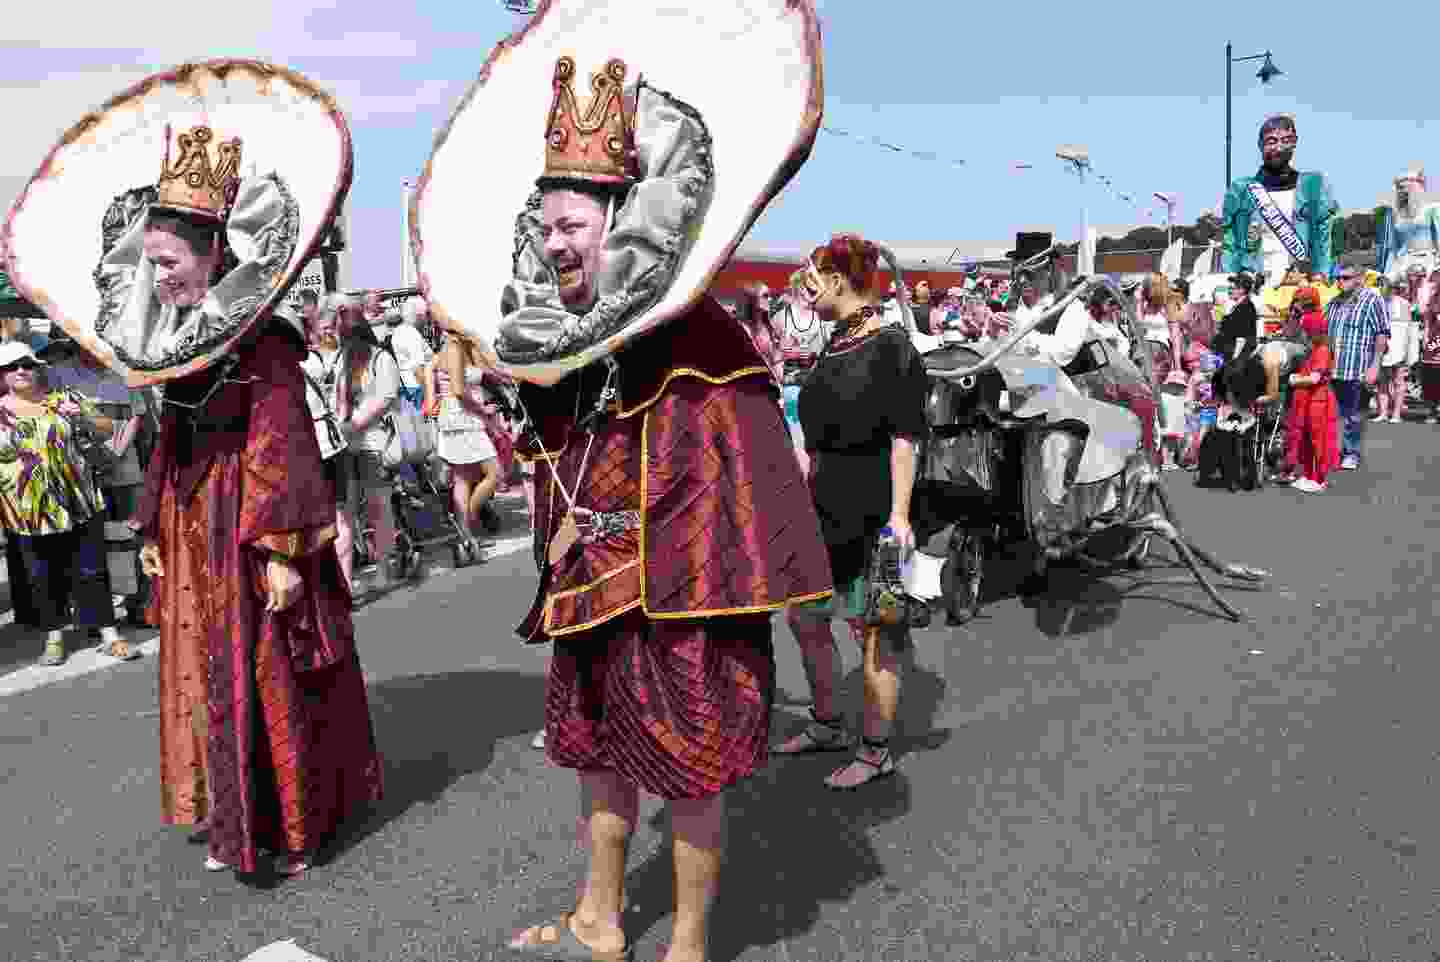 The Oyster King and Queen, Whitstable Oyster Festival (Shutterstock)